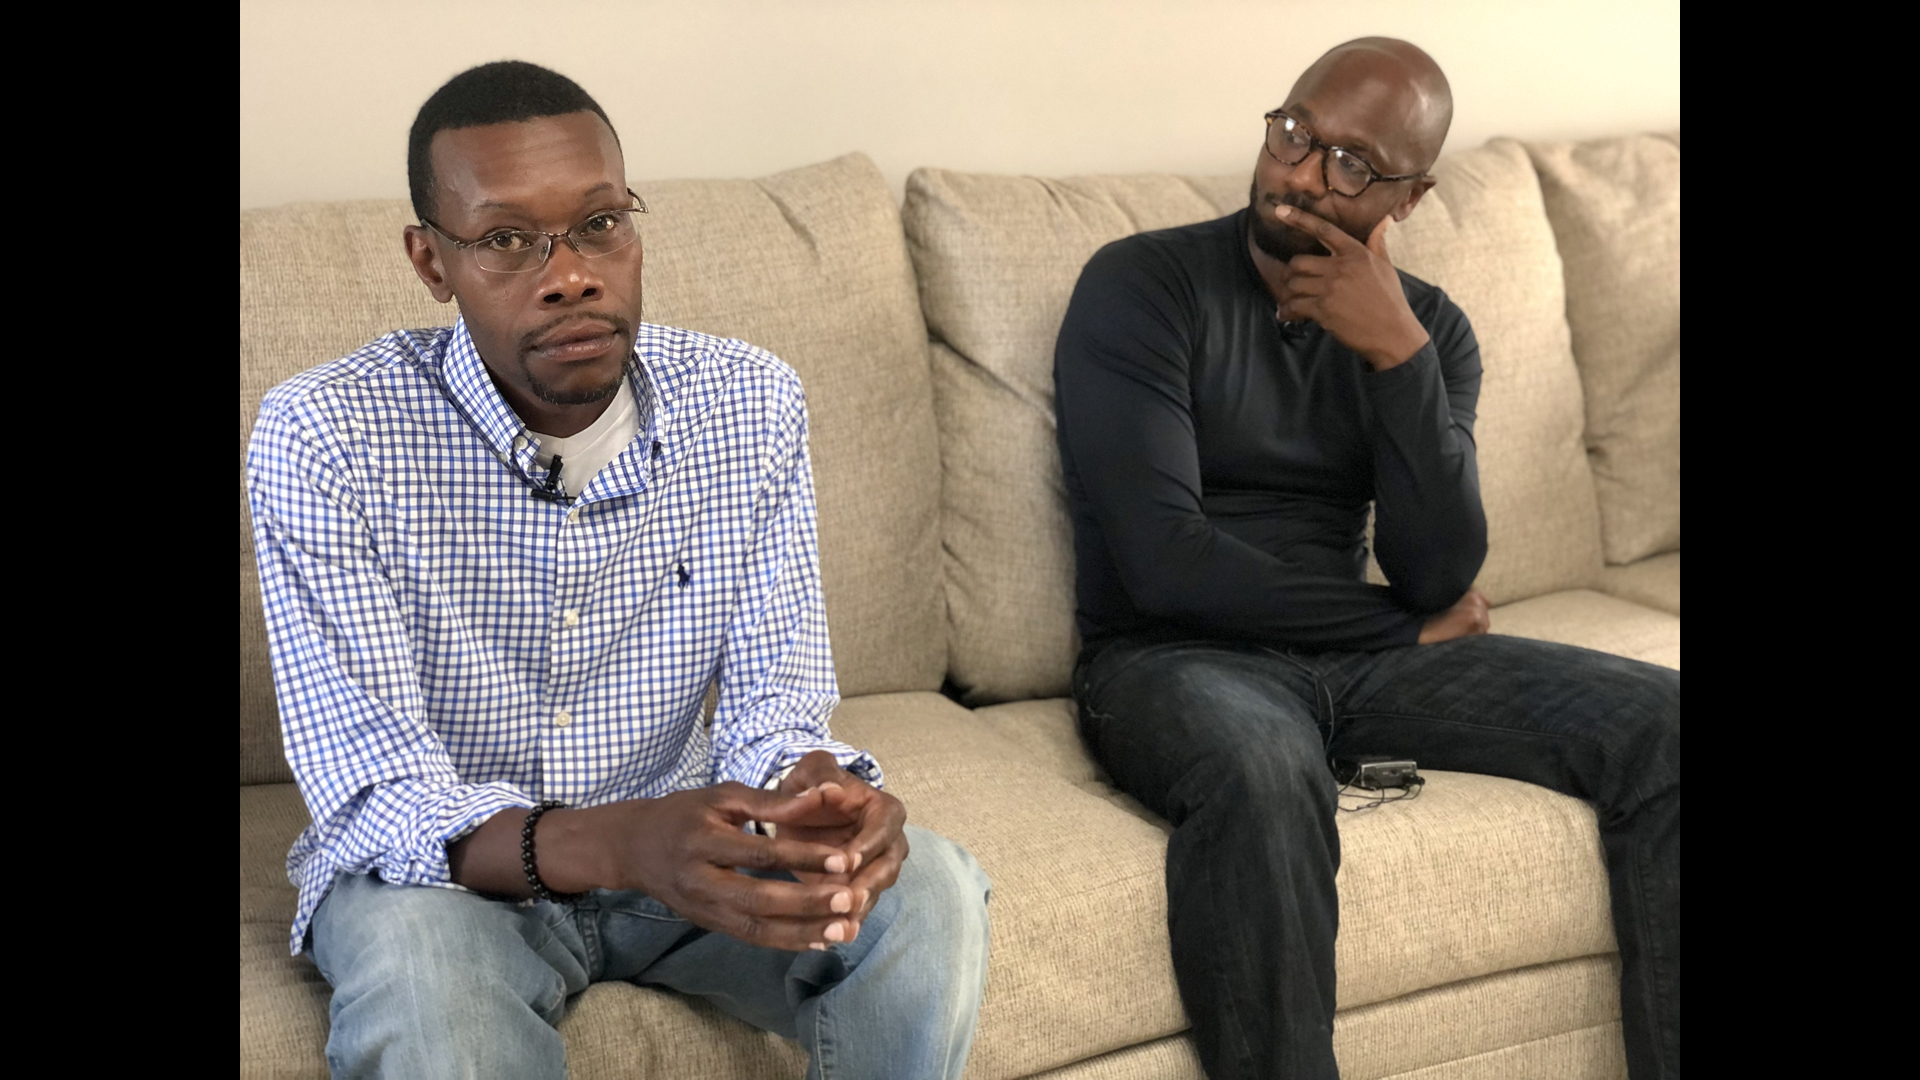 Black Realtor, His Client, and Client's Son Are Handcuffed During Michigan Home Showing After a Neighbor Called 911 Reporting a Break-in